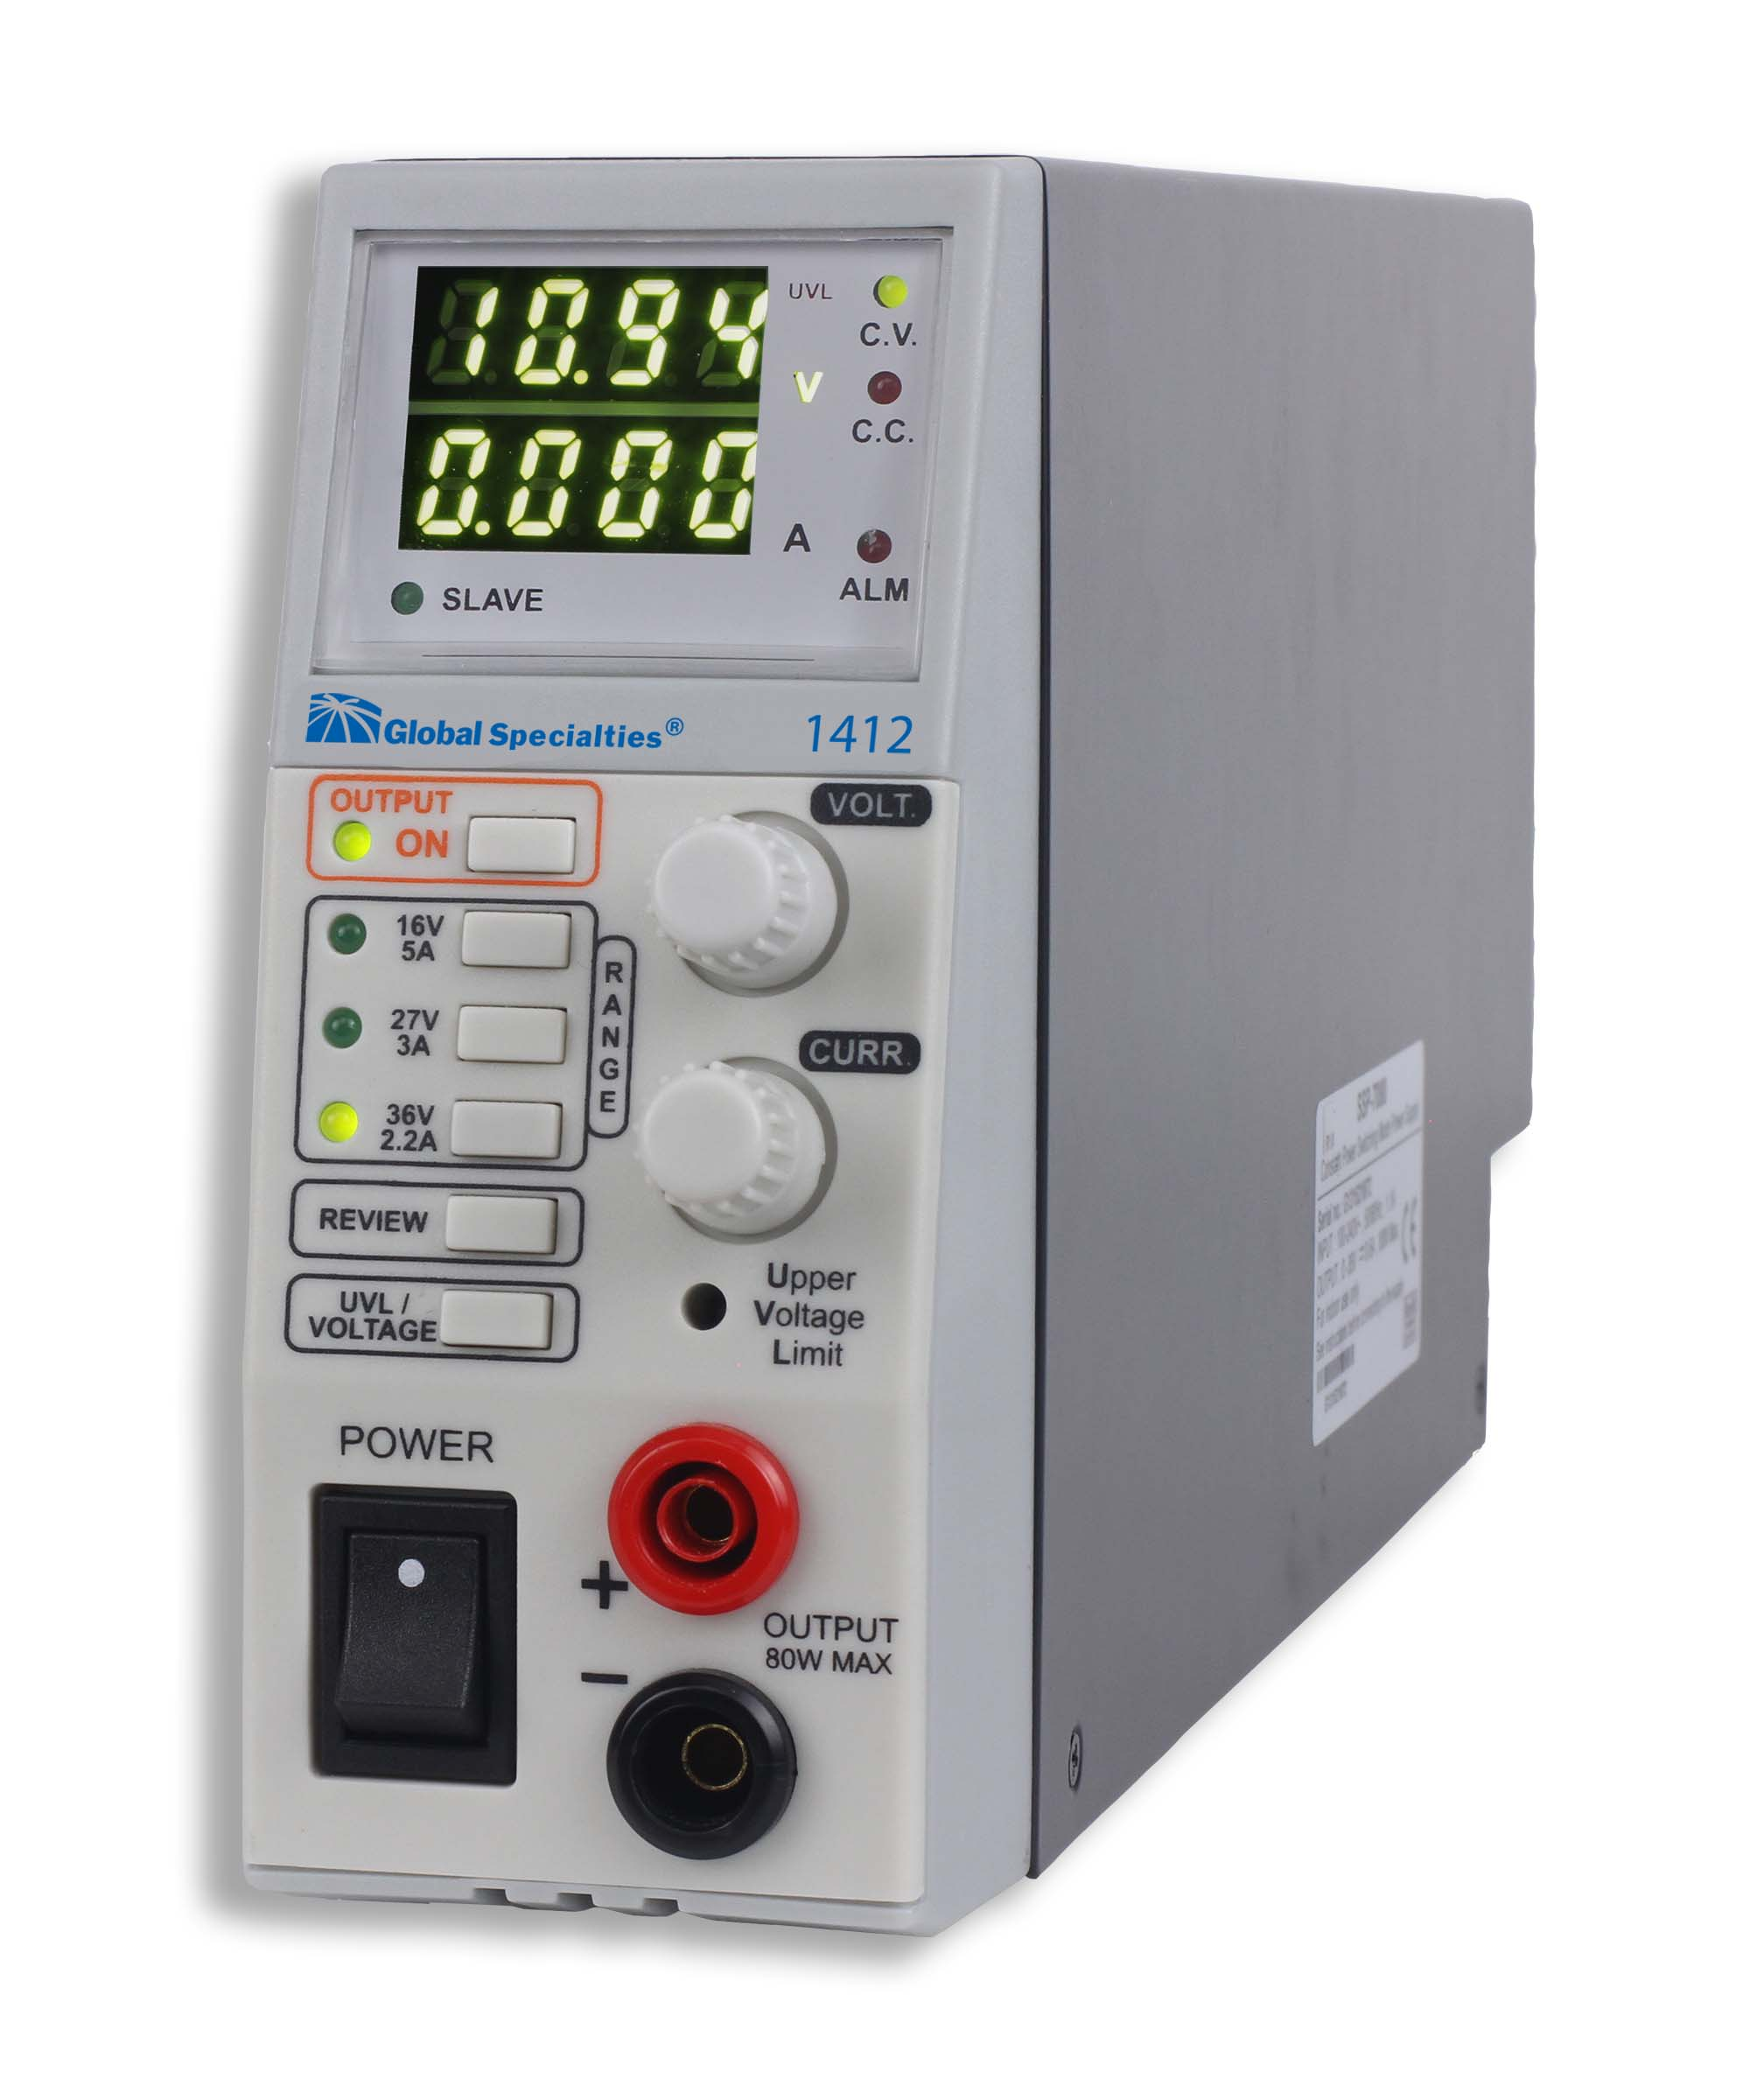 Global Specialties 1412 80 W Triple Range Switching DC Power Supply: 16V, 5A / 27V, 3A / 36V, 2.2A Photo